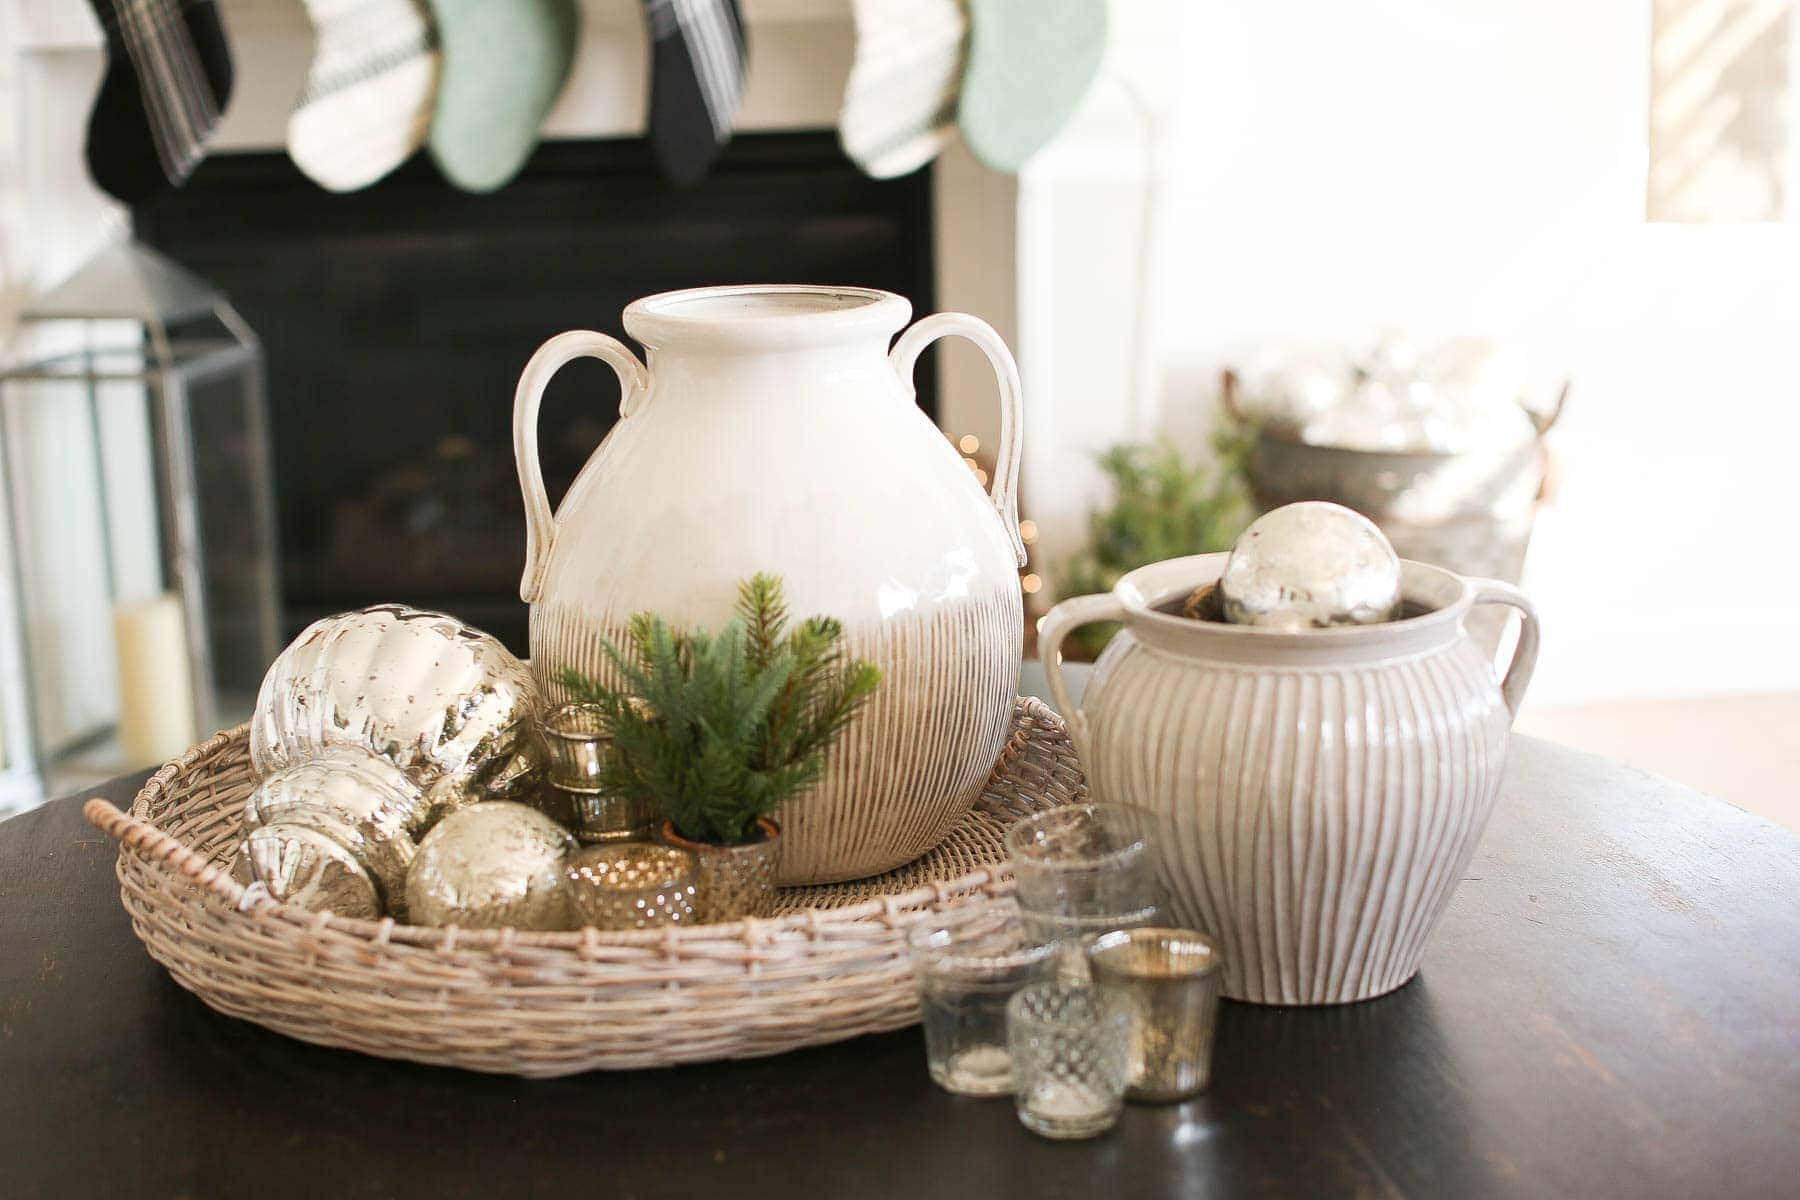 Simple Festive decorations on the coffee table